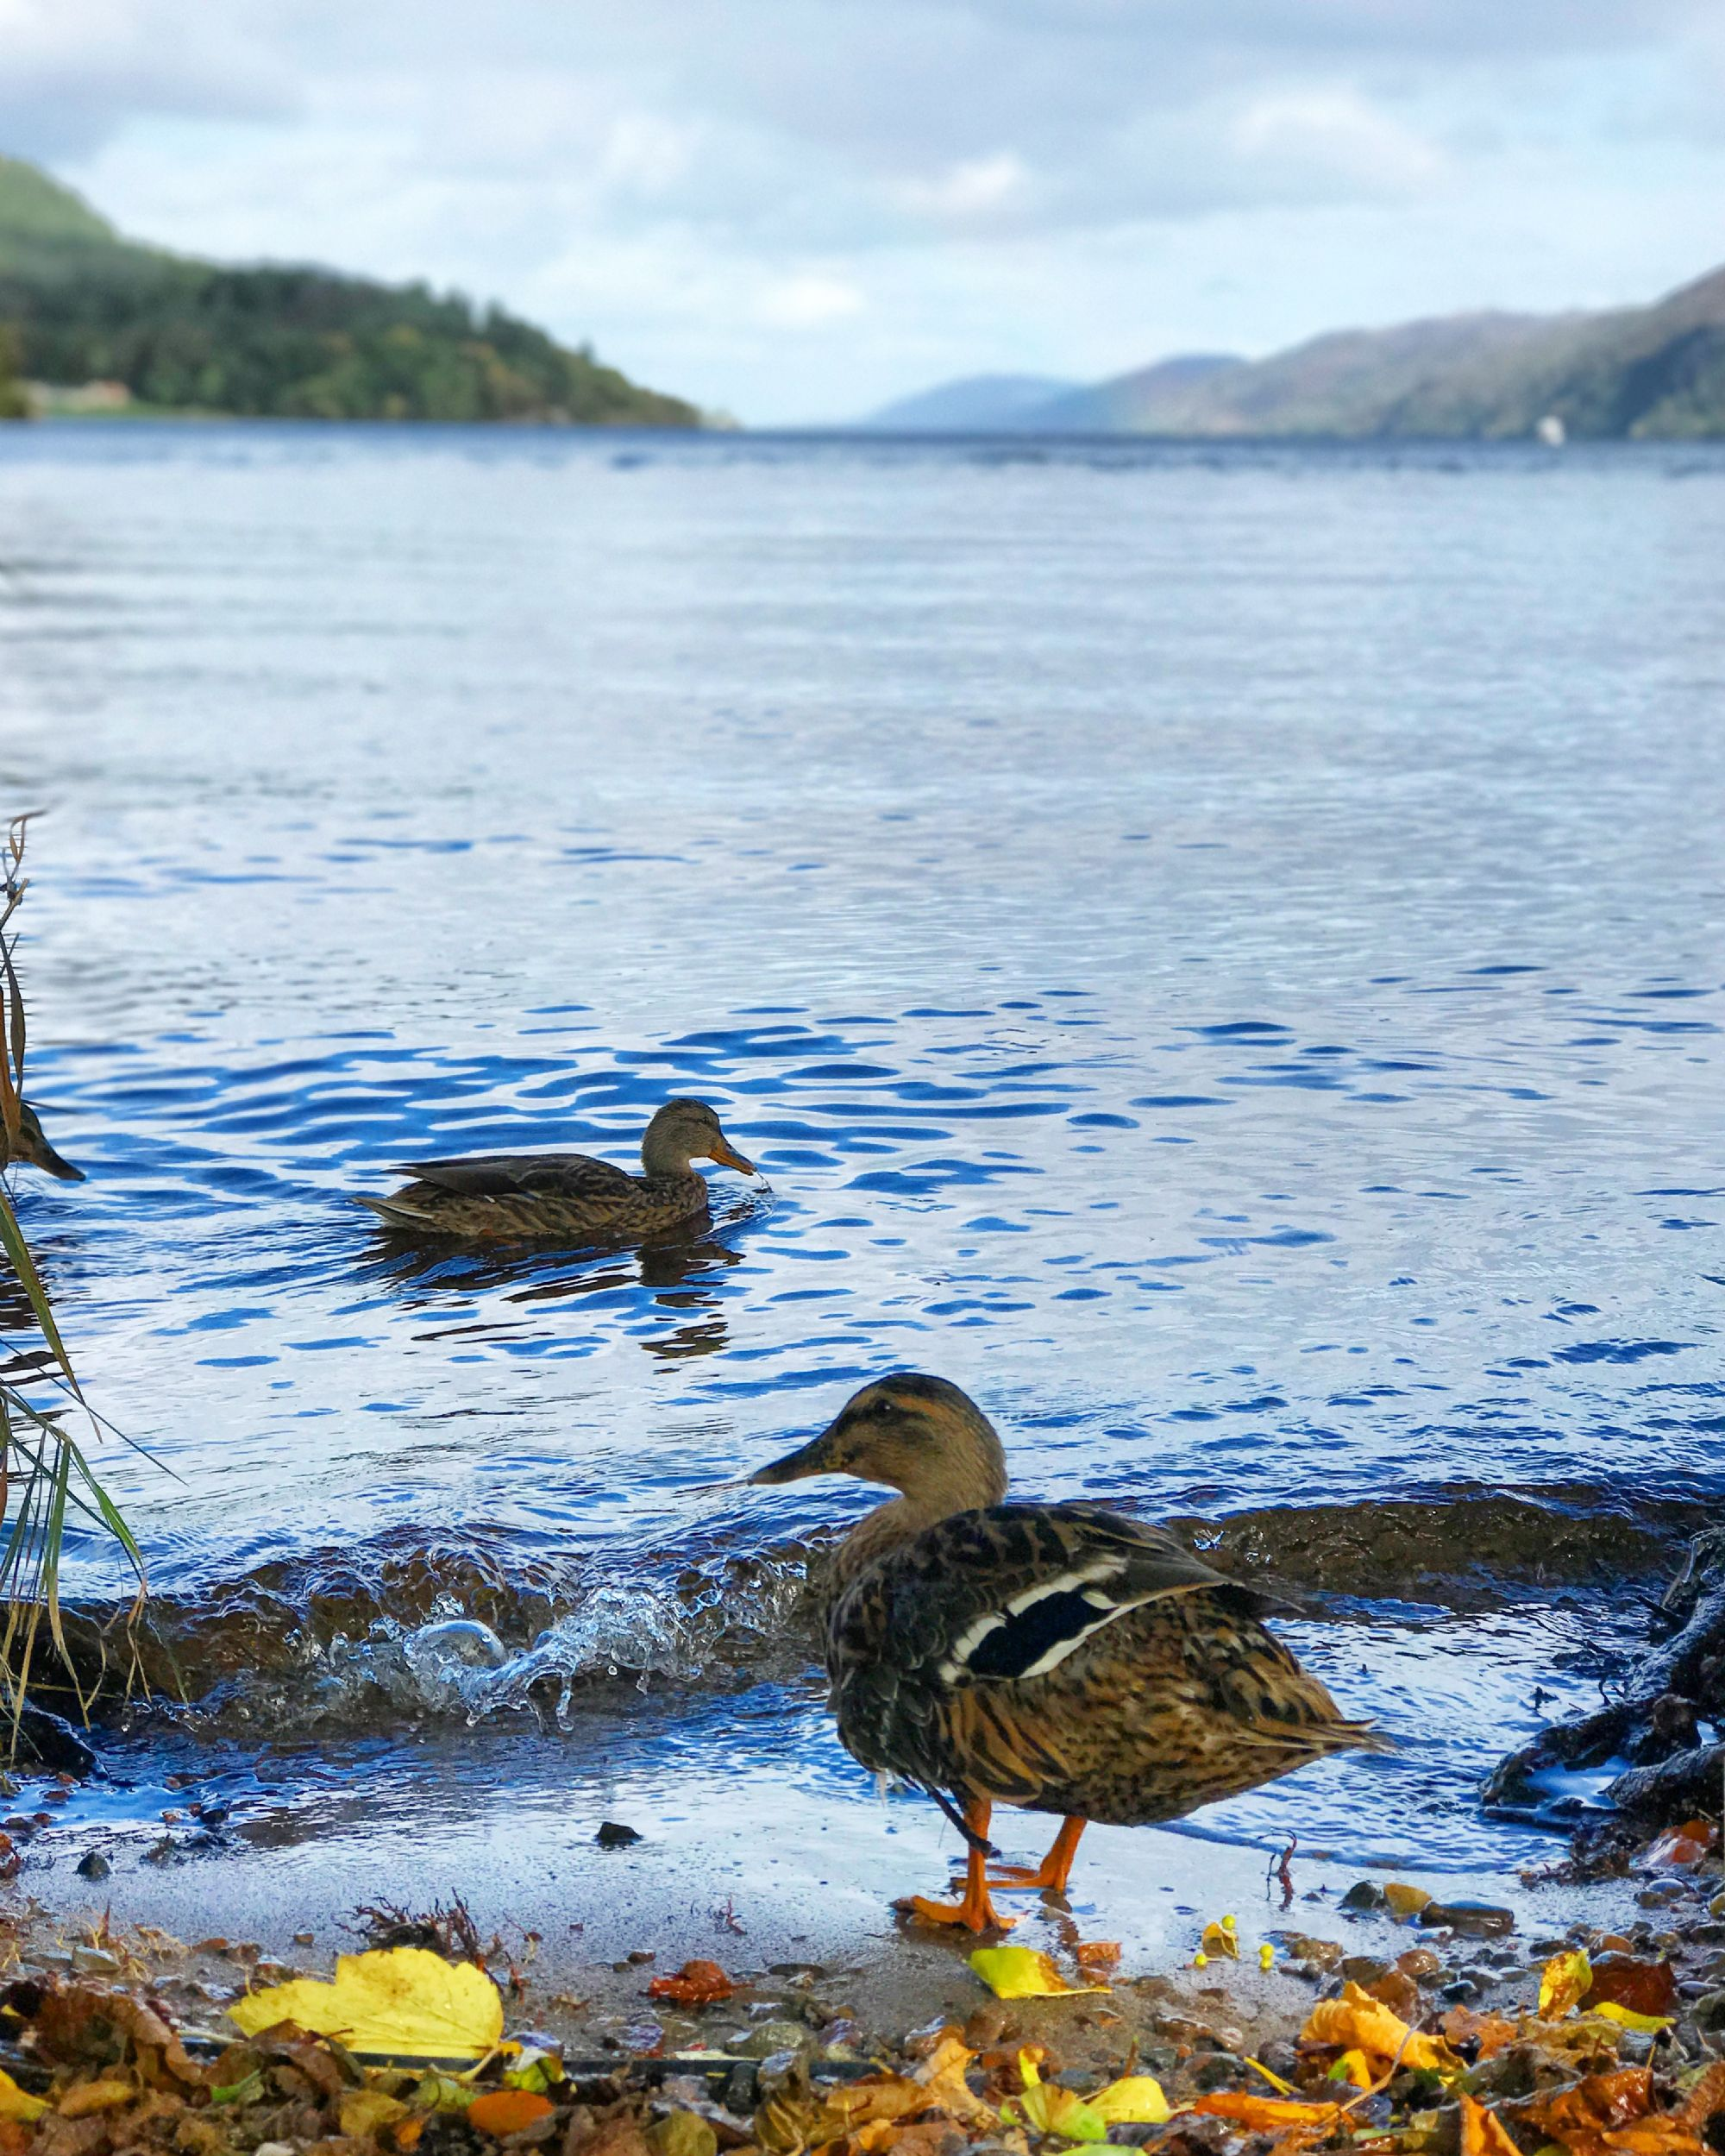 Lochness with the Duckies! 128522